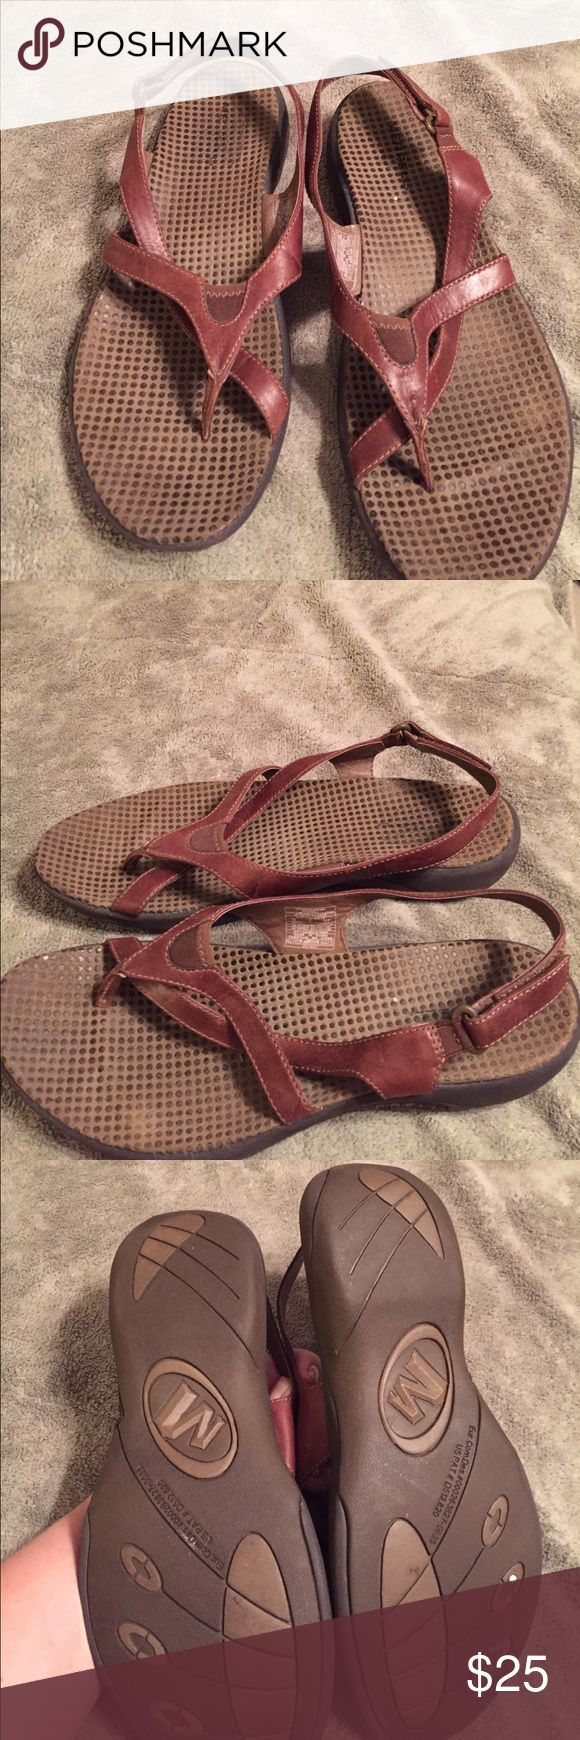 Merrell brown leather sandals Velcro straps brown leather sandals Merrell Shoes Sandals